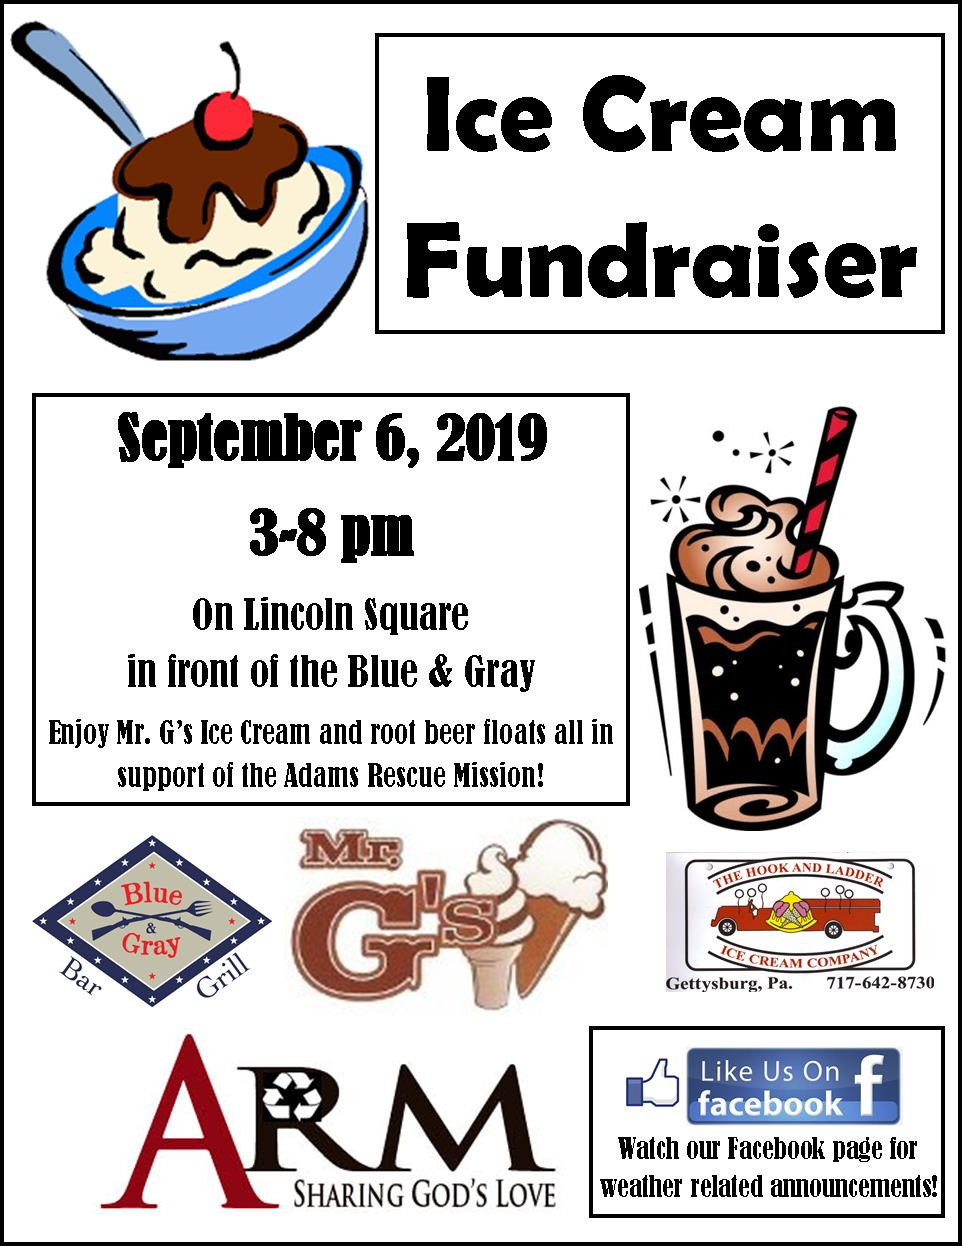 Ice Cream Fundraiser September 6 2019.jpg